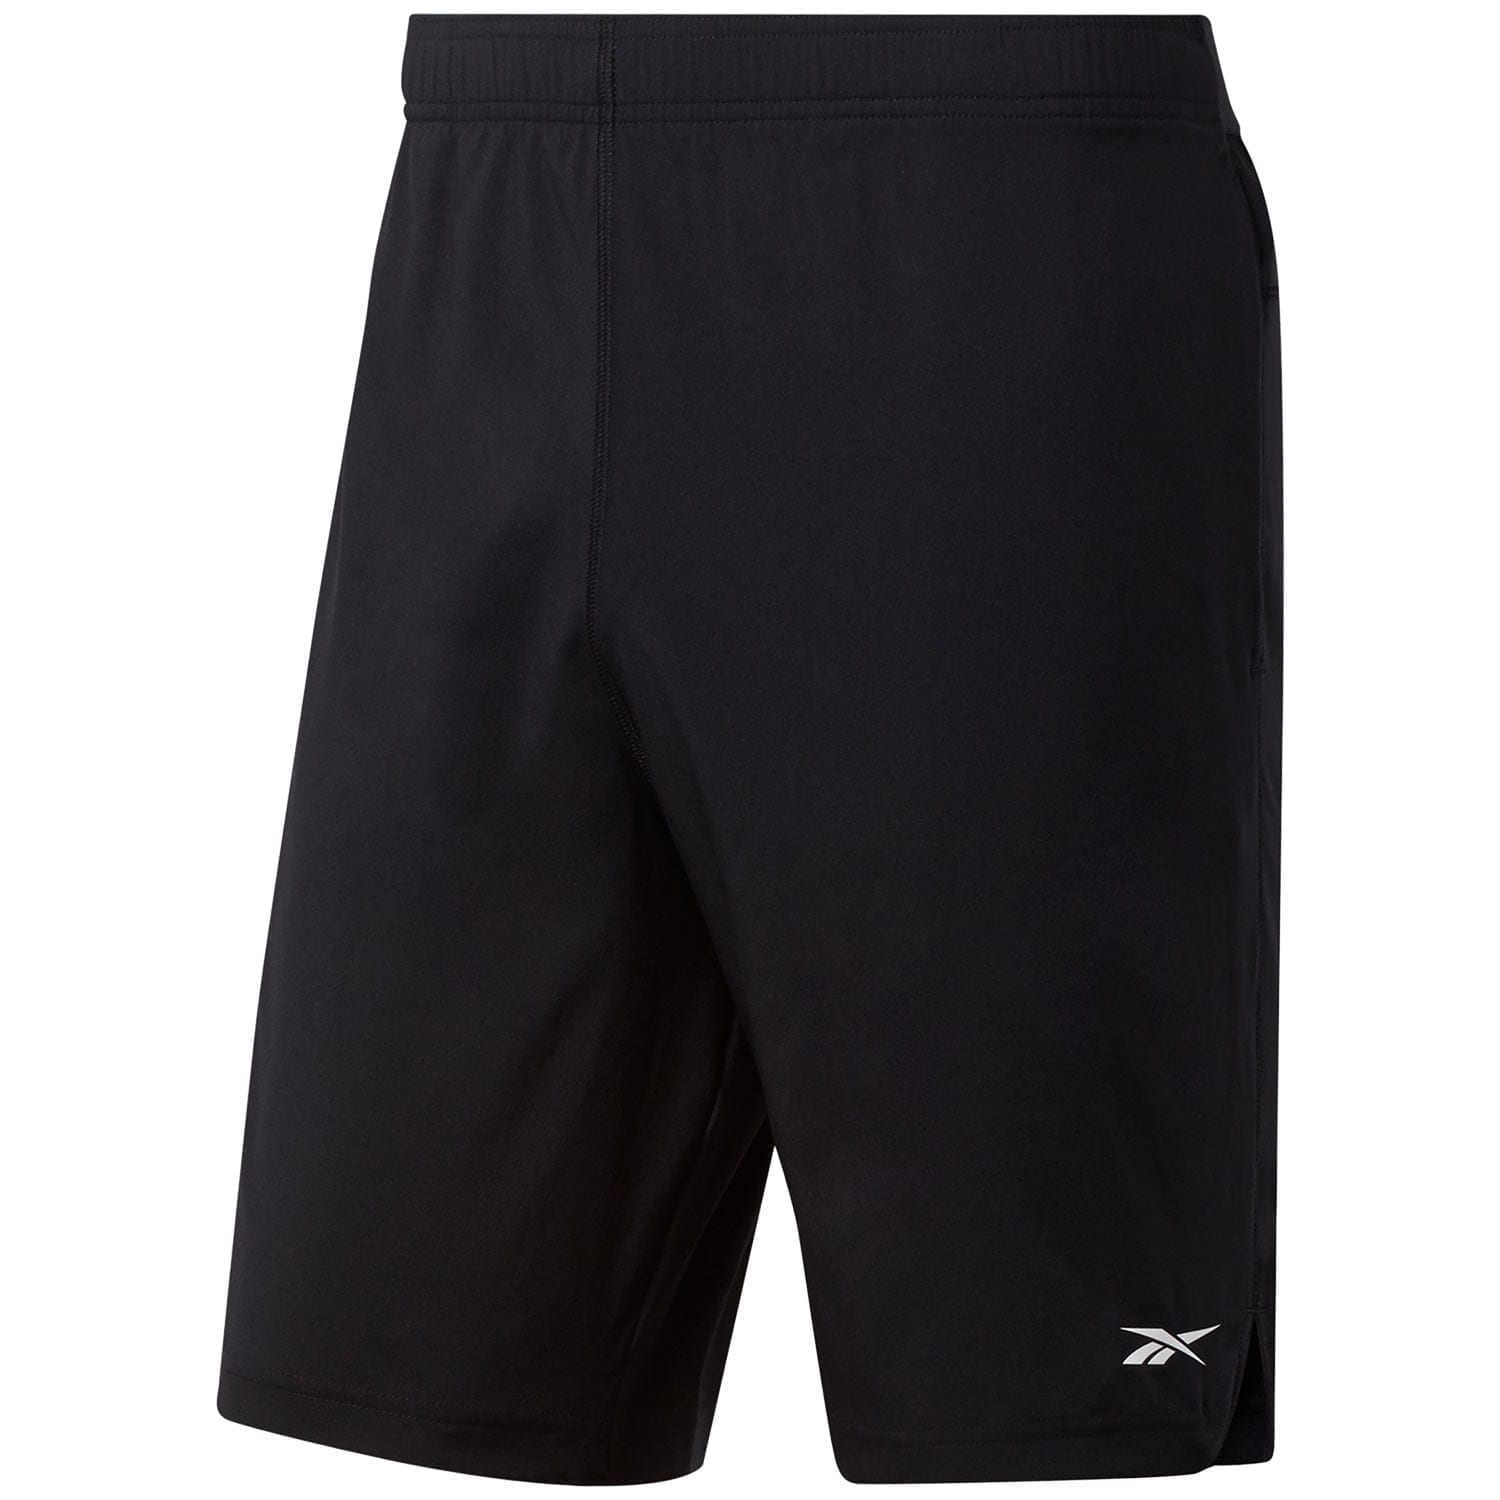 REEBOKHerren-Trainingsshort